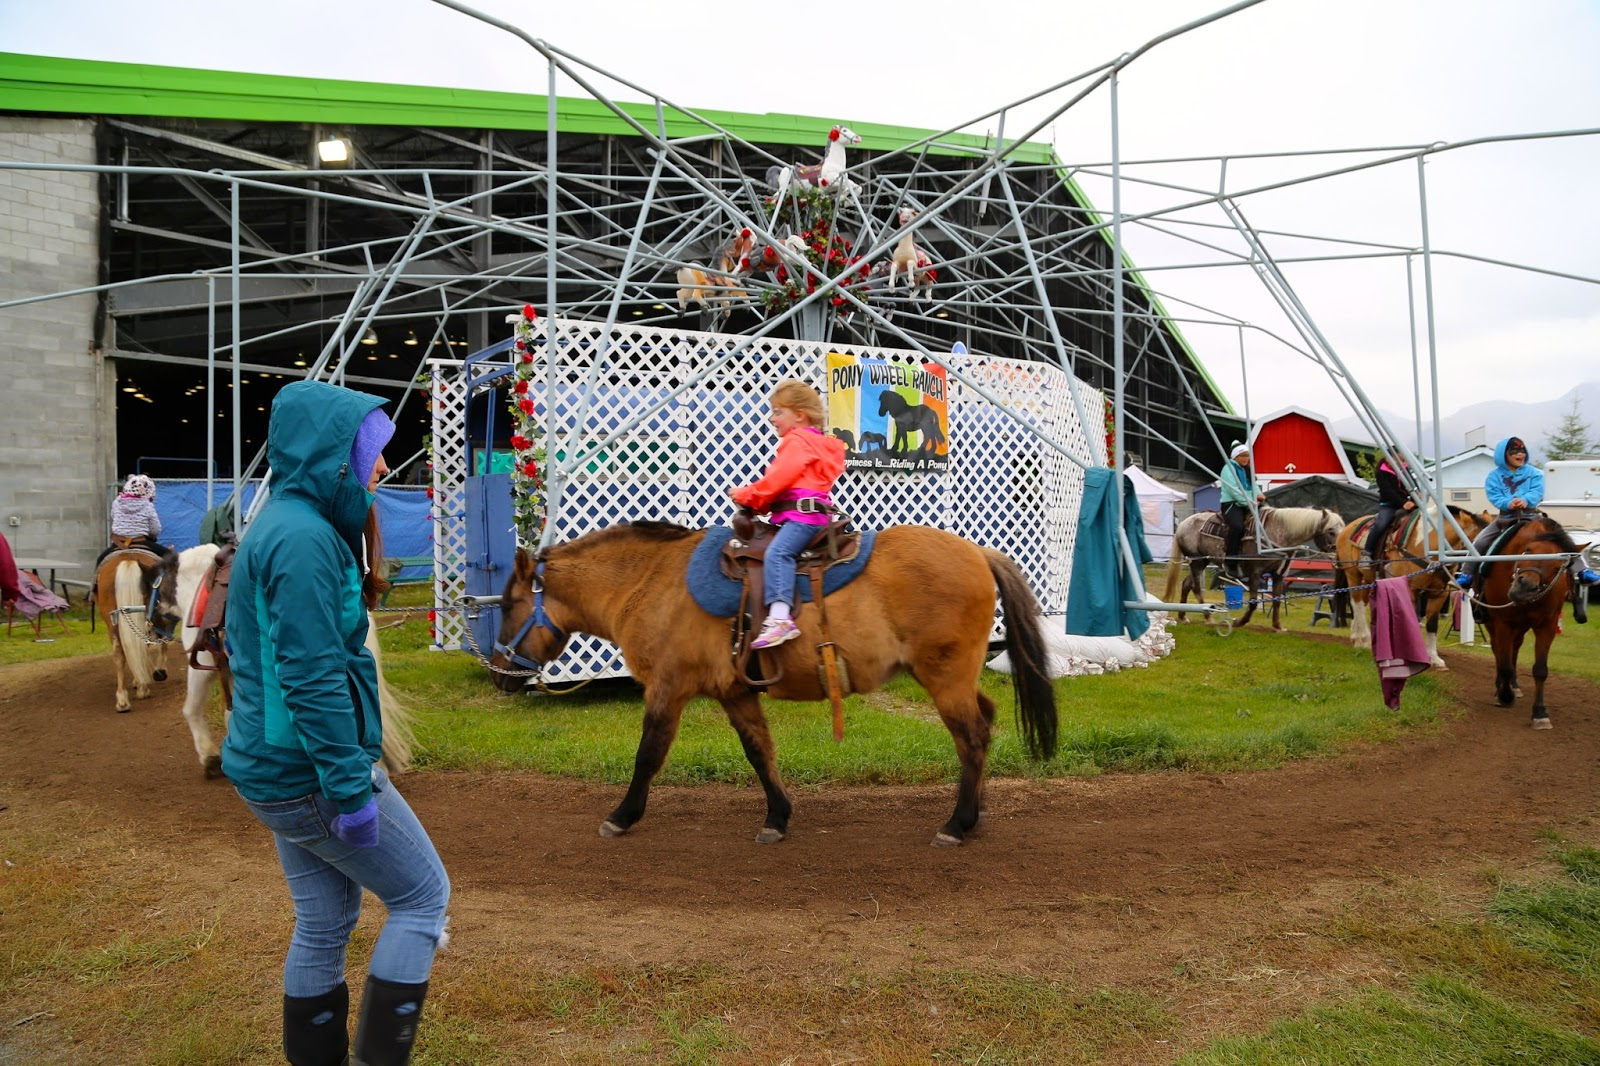 Horse drawn carousel, Alaska State Fair